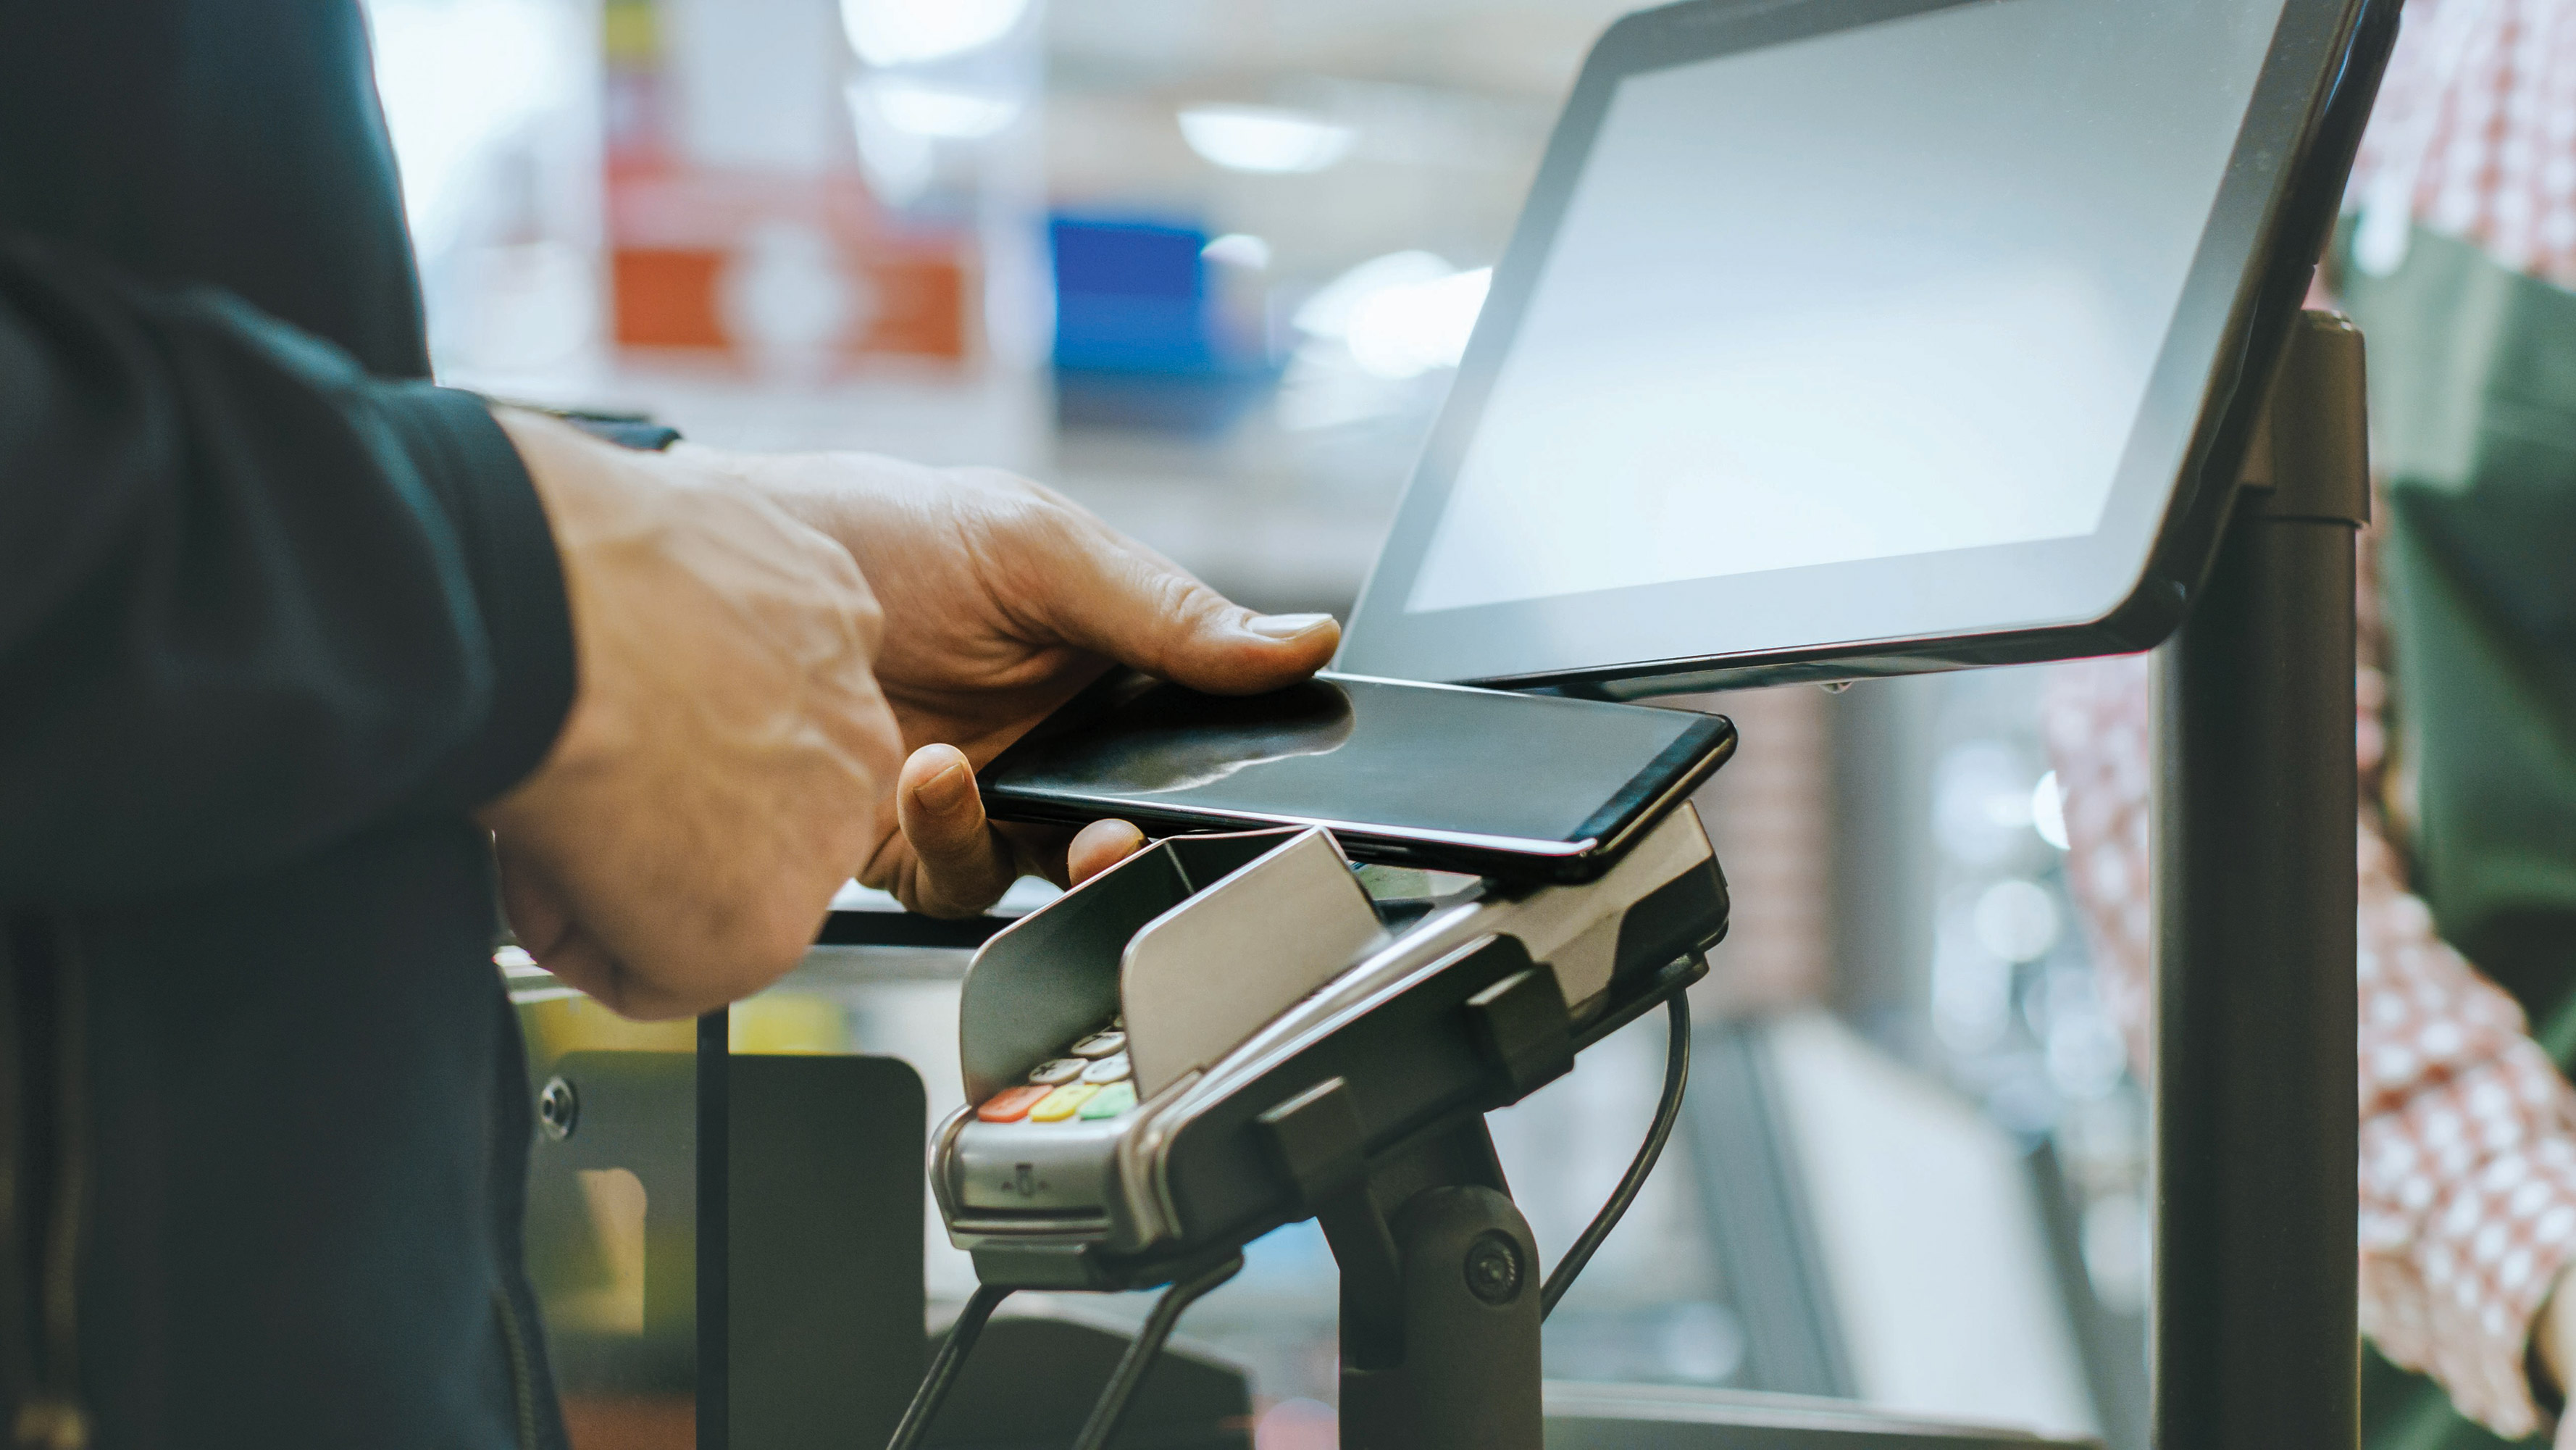 A person waves their smartphone over a credit card payment terminal to make a mobile payment at a checkout counter inside of a CVS Pharmacy store.